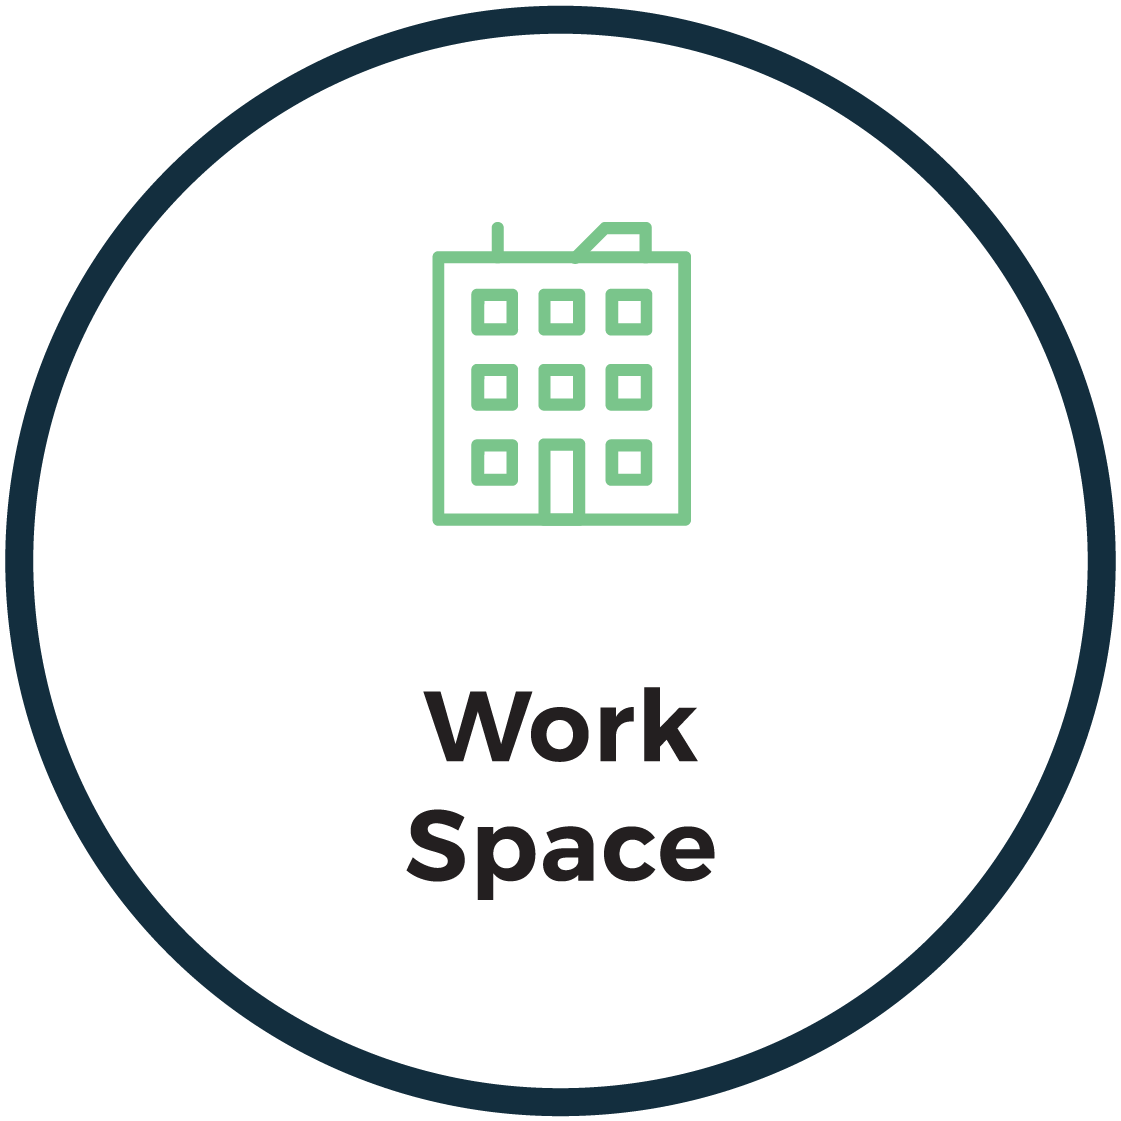 w-work-space